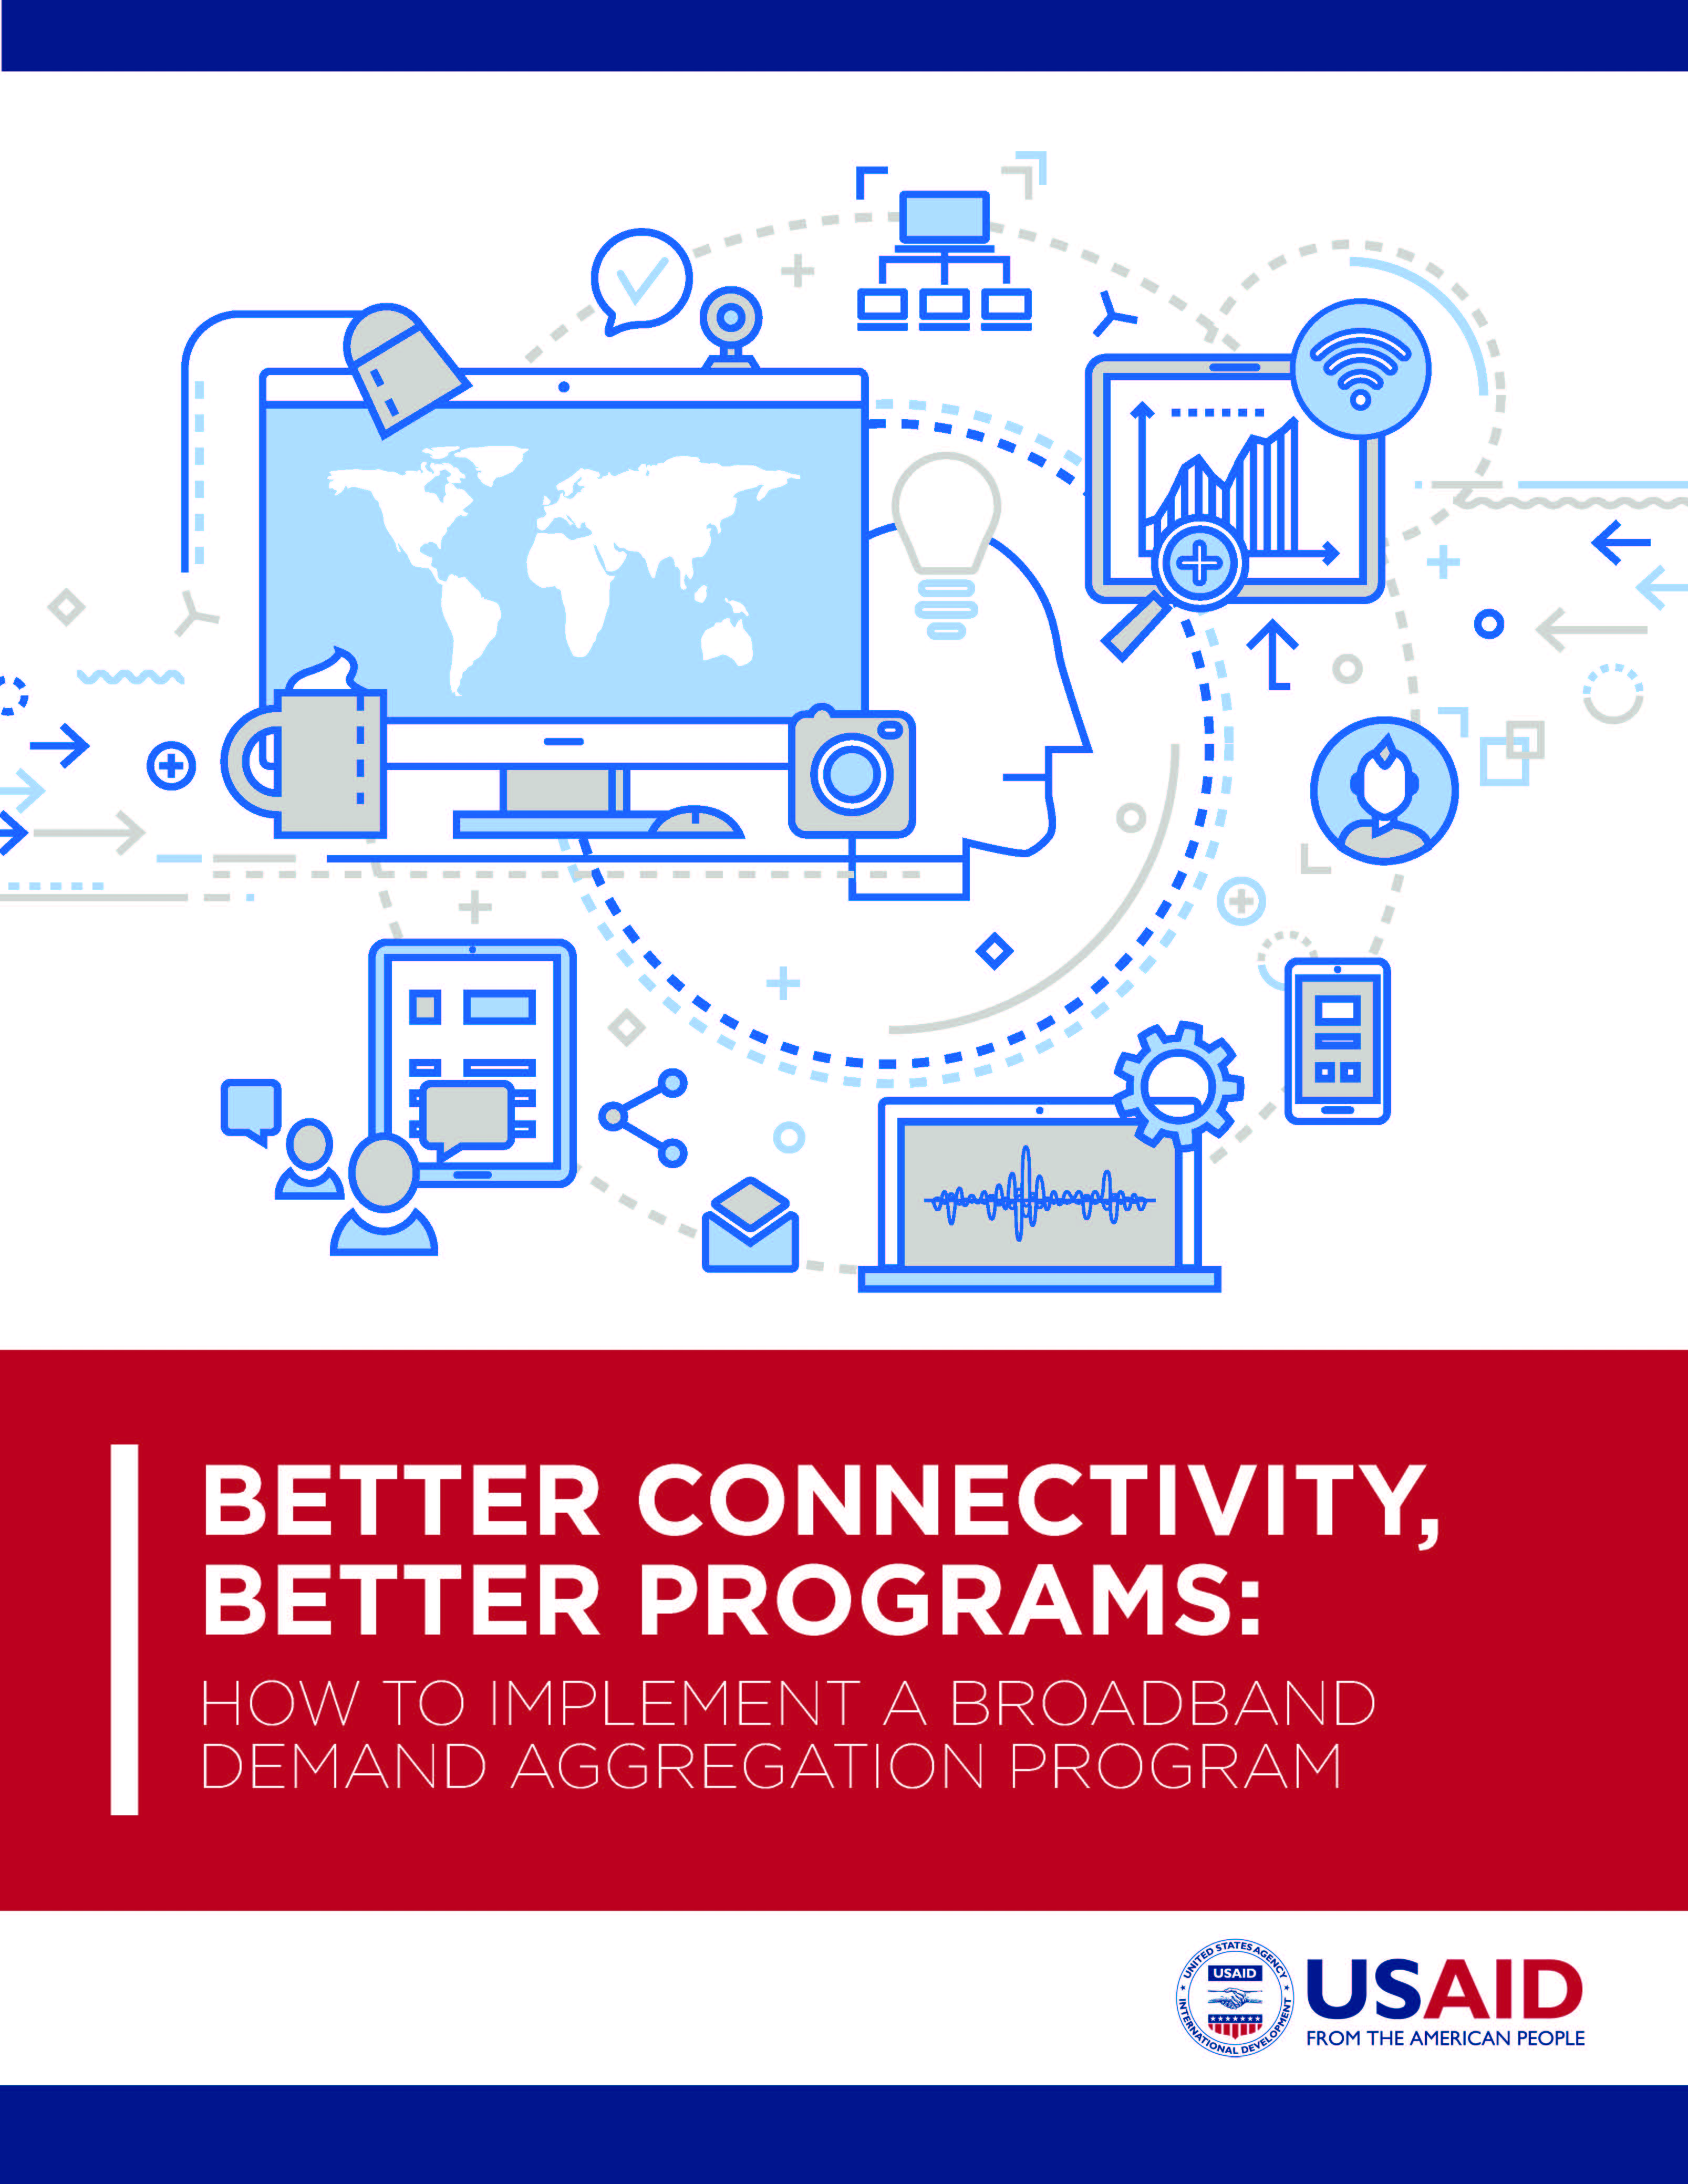 Better Connectivity, Better Programs: How to Implement a Broadband Demand Aggregation Program